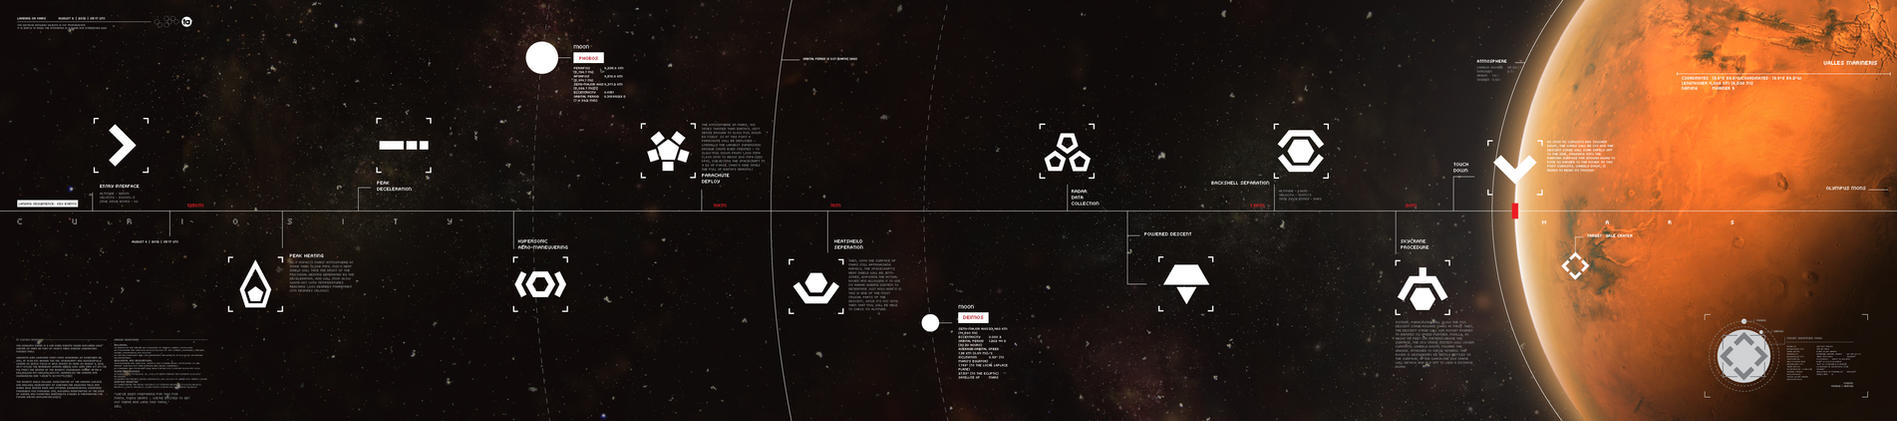 Curiosity Isotype Infographic by Thomas-Austin